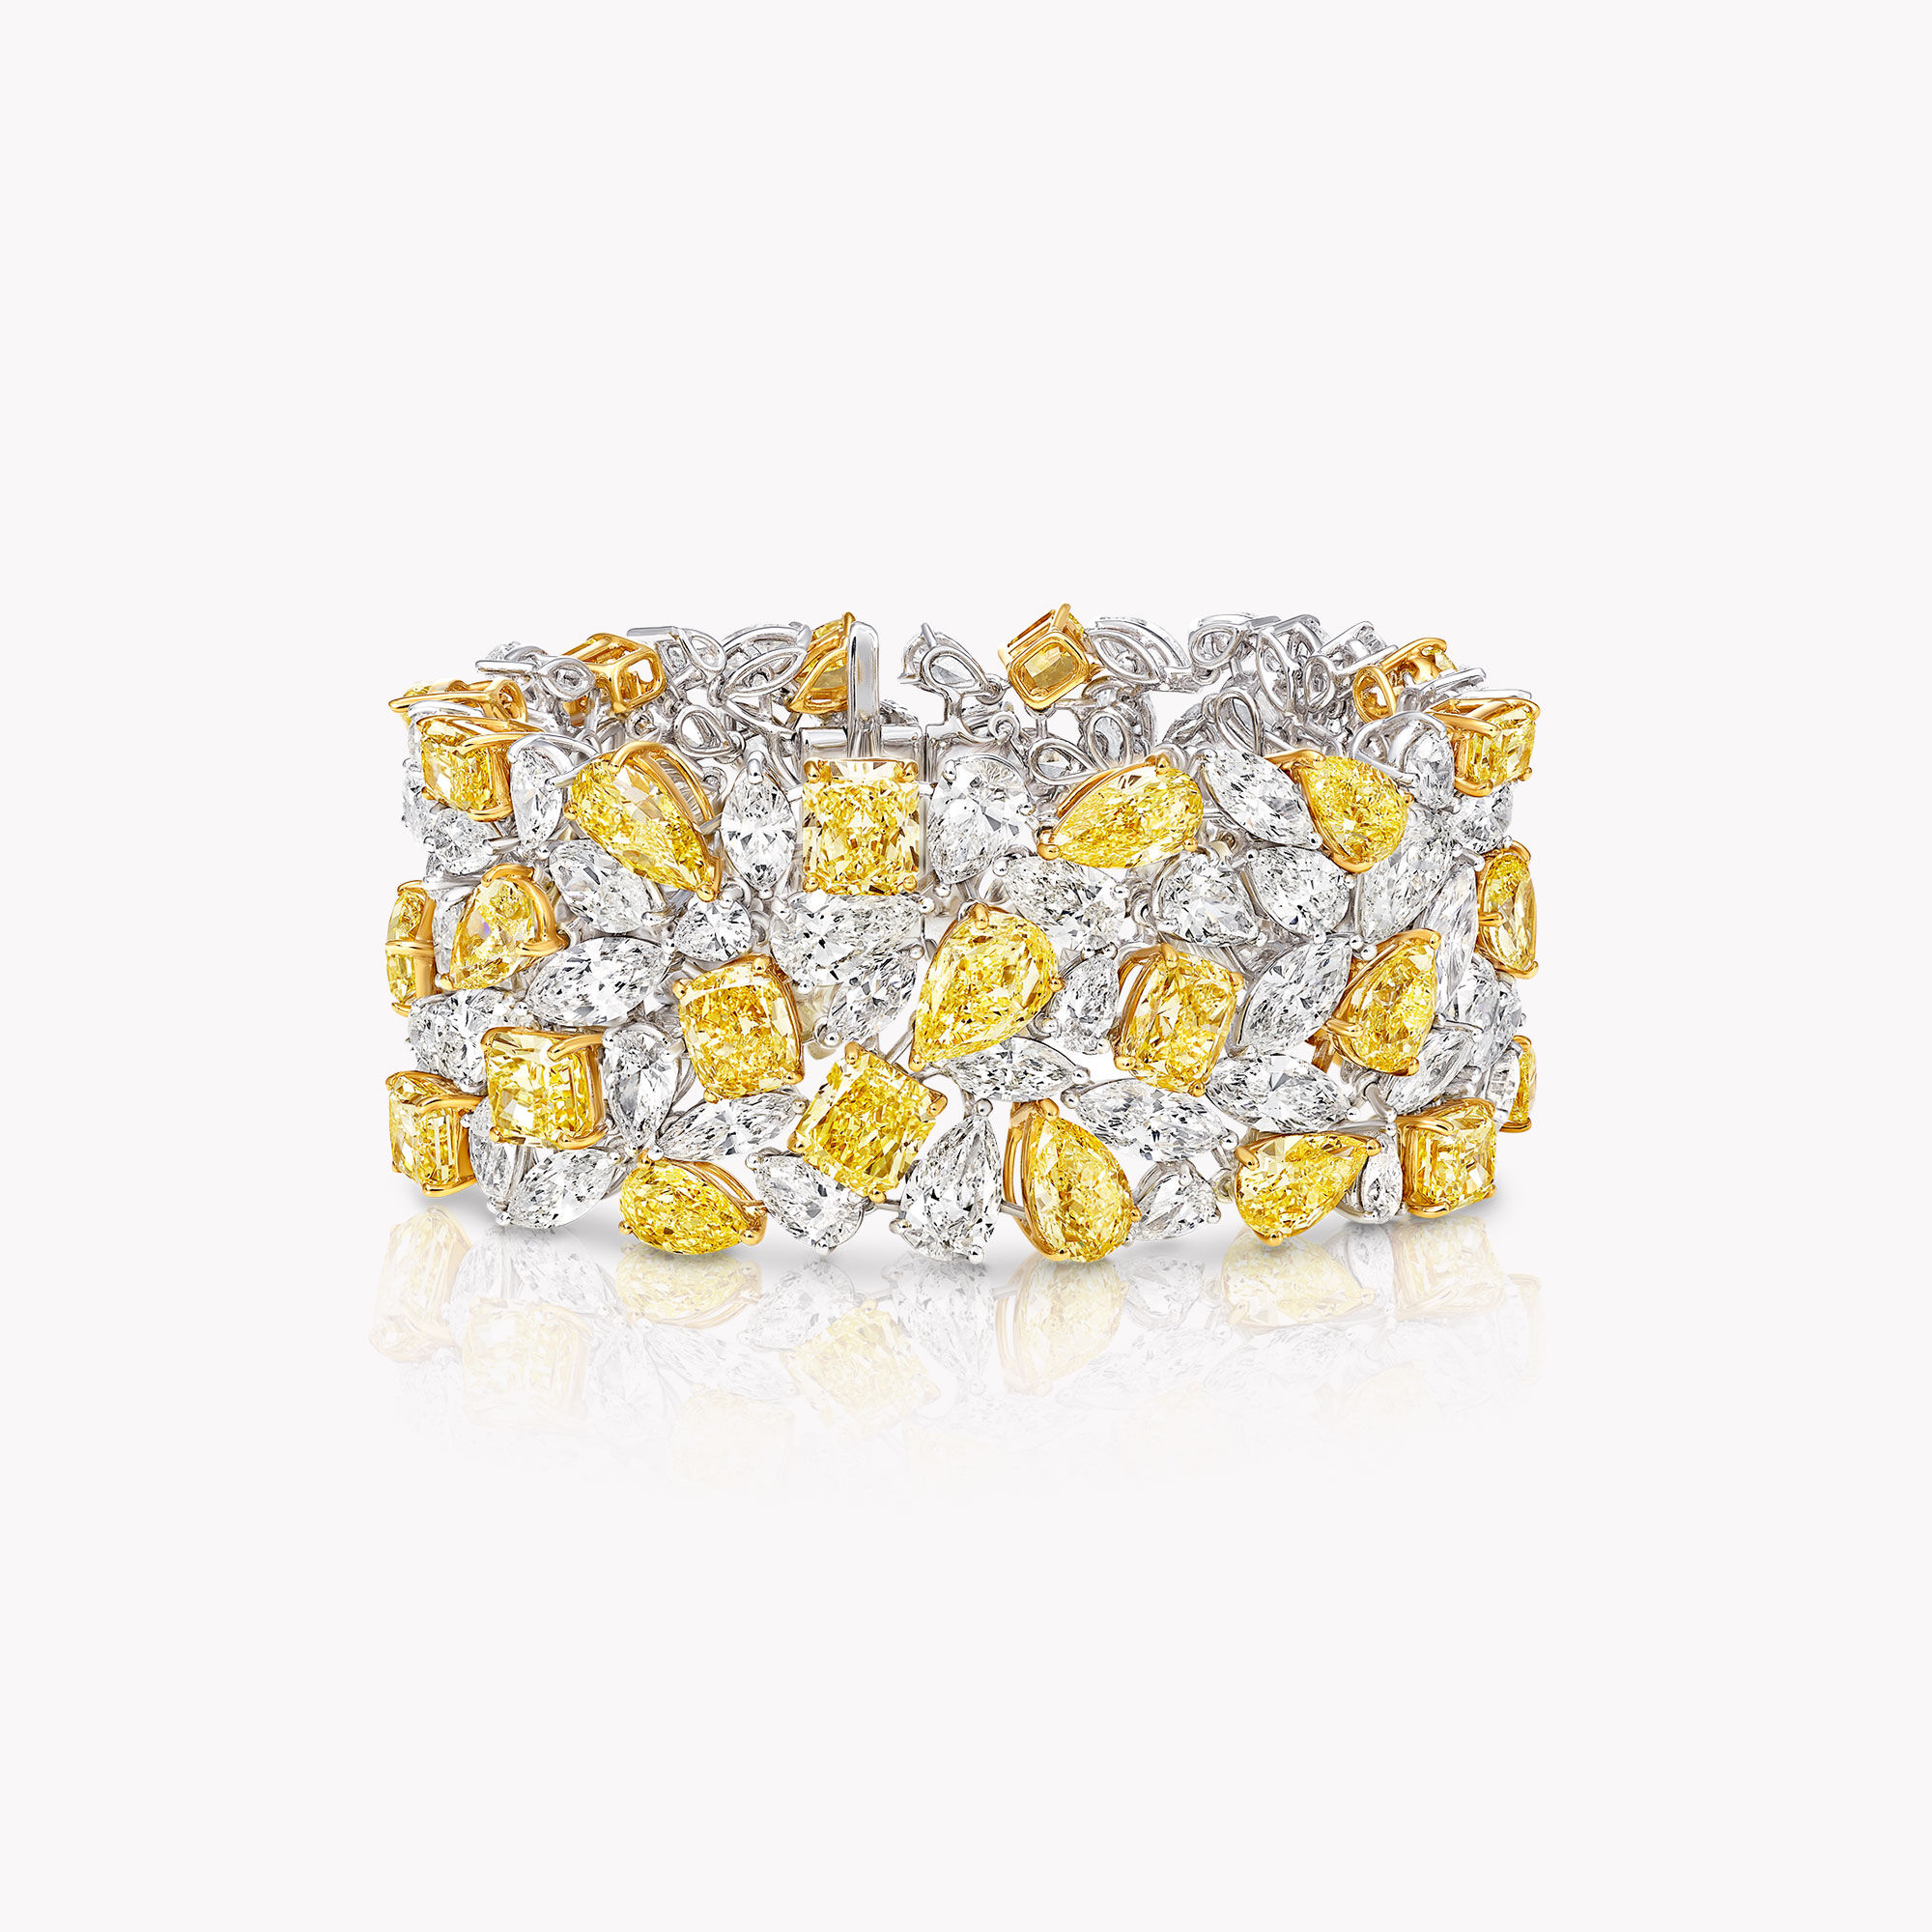 A Graff yellow and white diamond high jewellery bracelet